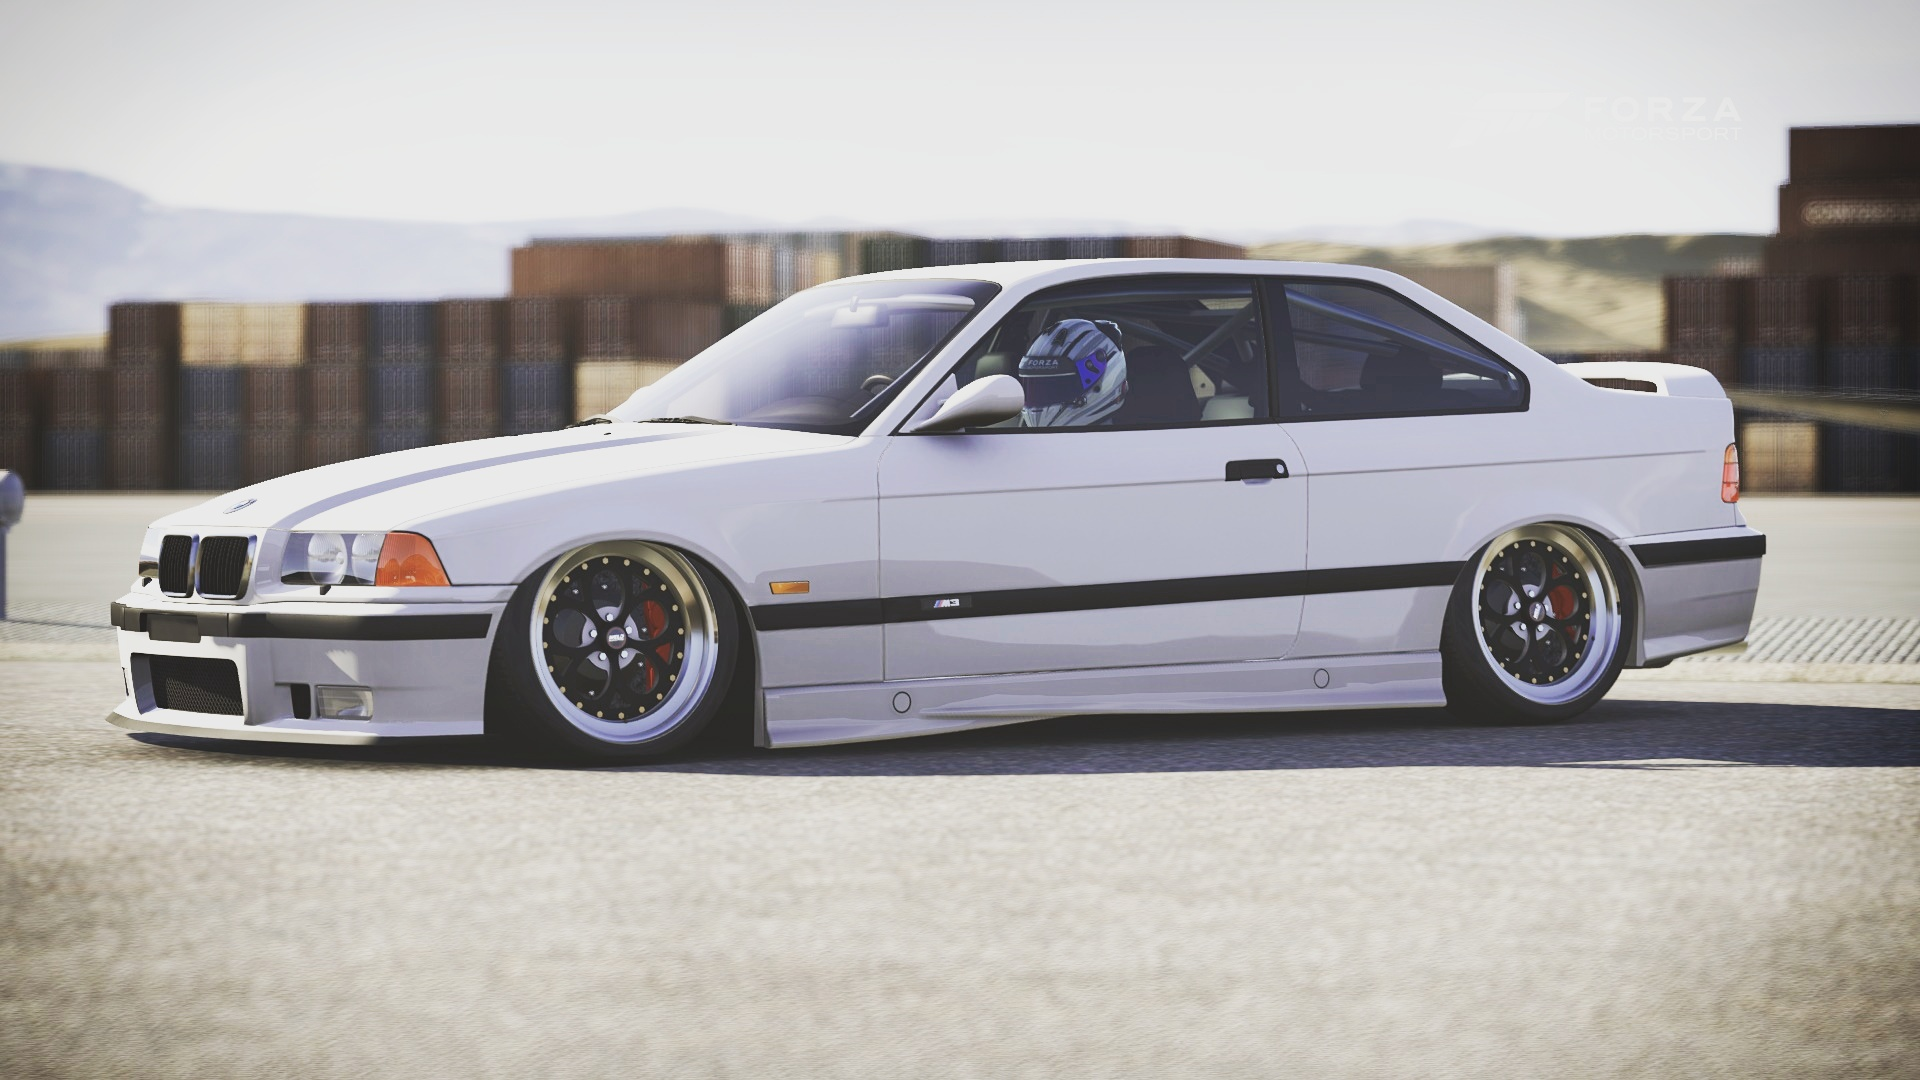 Bagged E36 M3 In Forza Motorsport 6